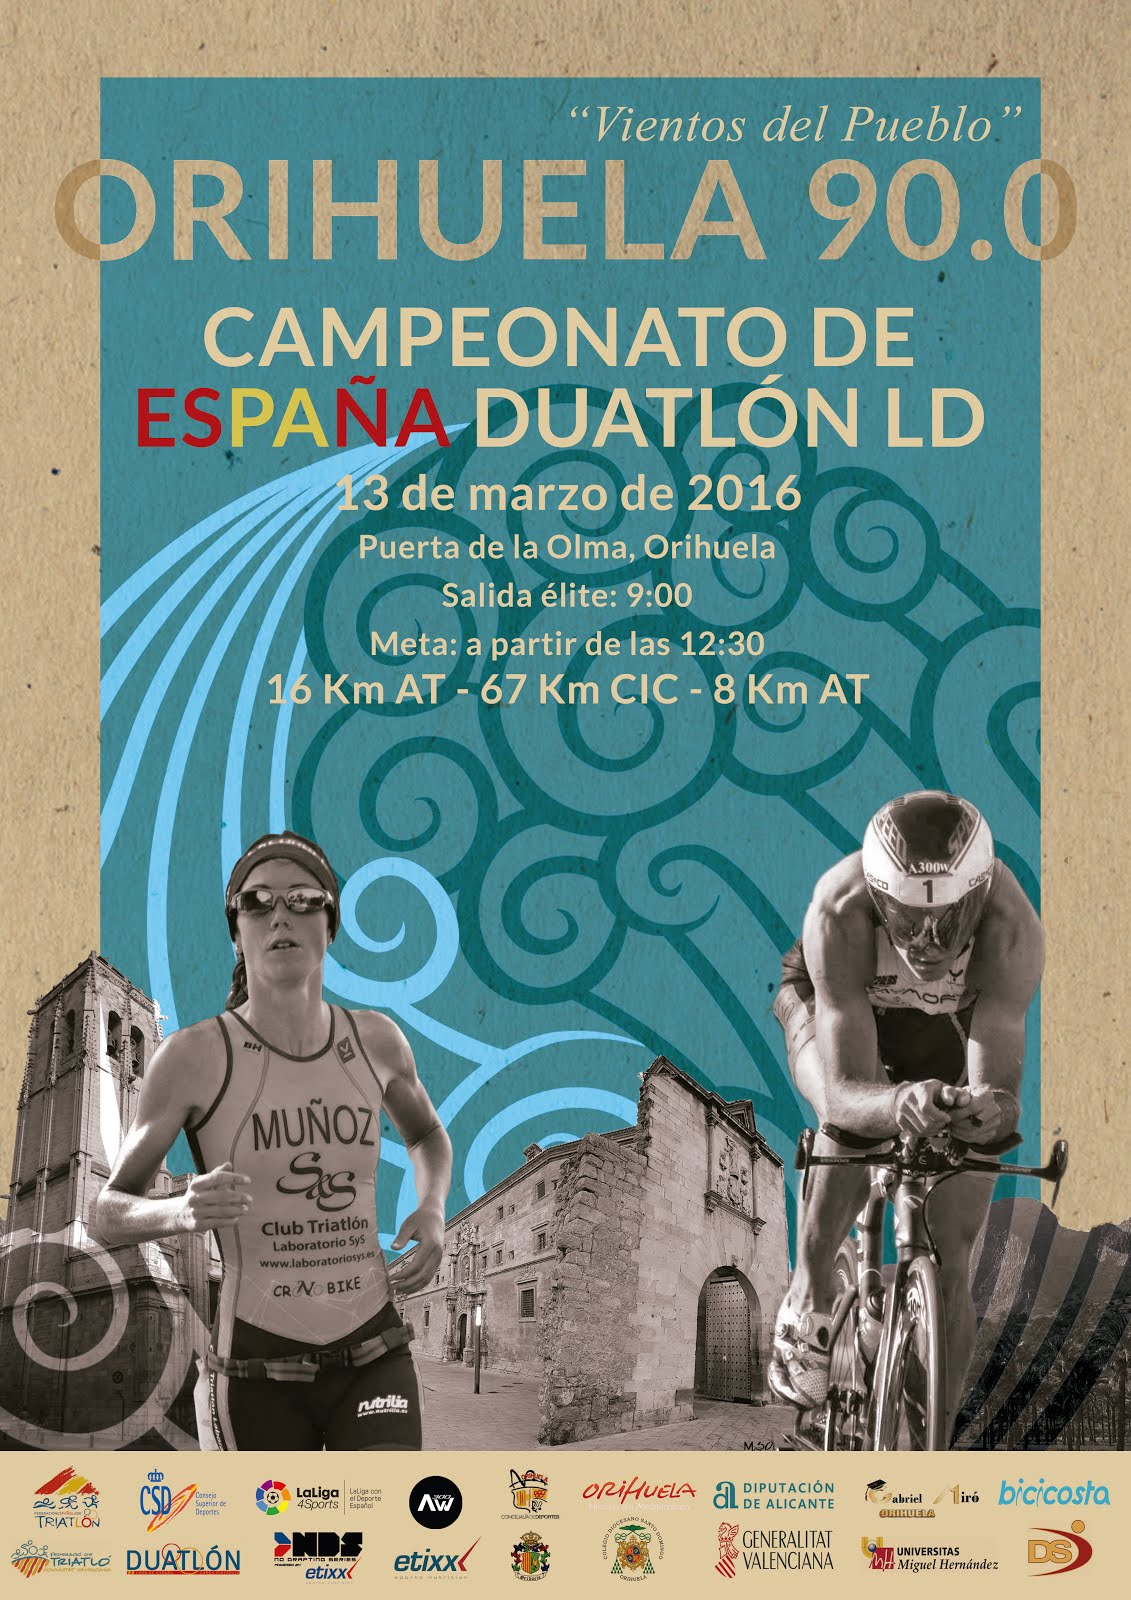 FINISHER CAMP. ESPAÑA DUATLÓN LD ORIHUELA 2016